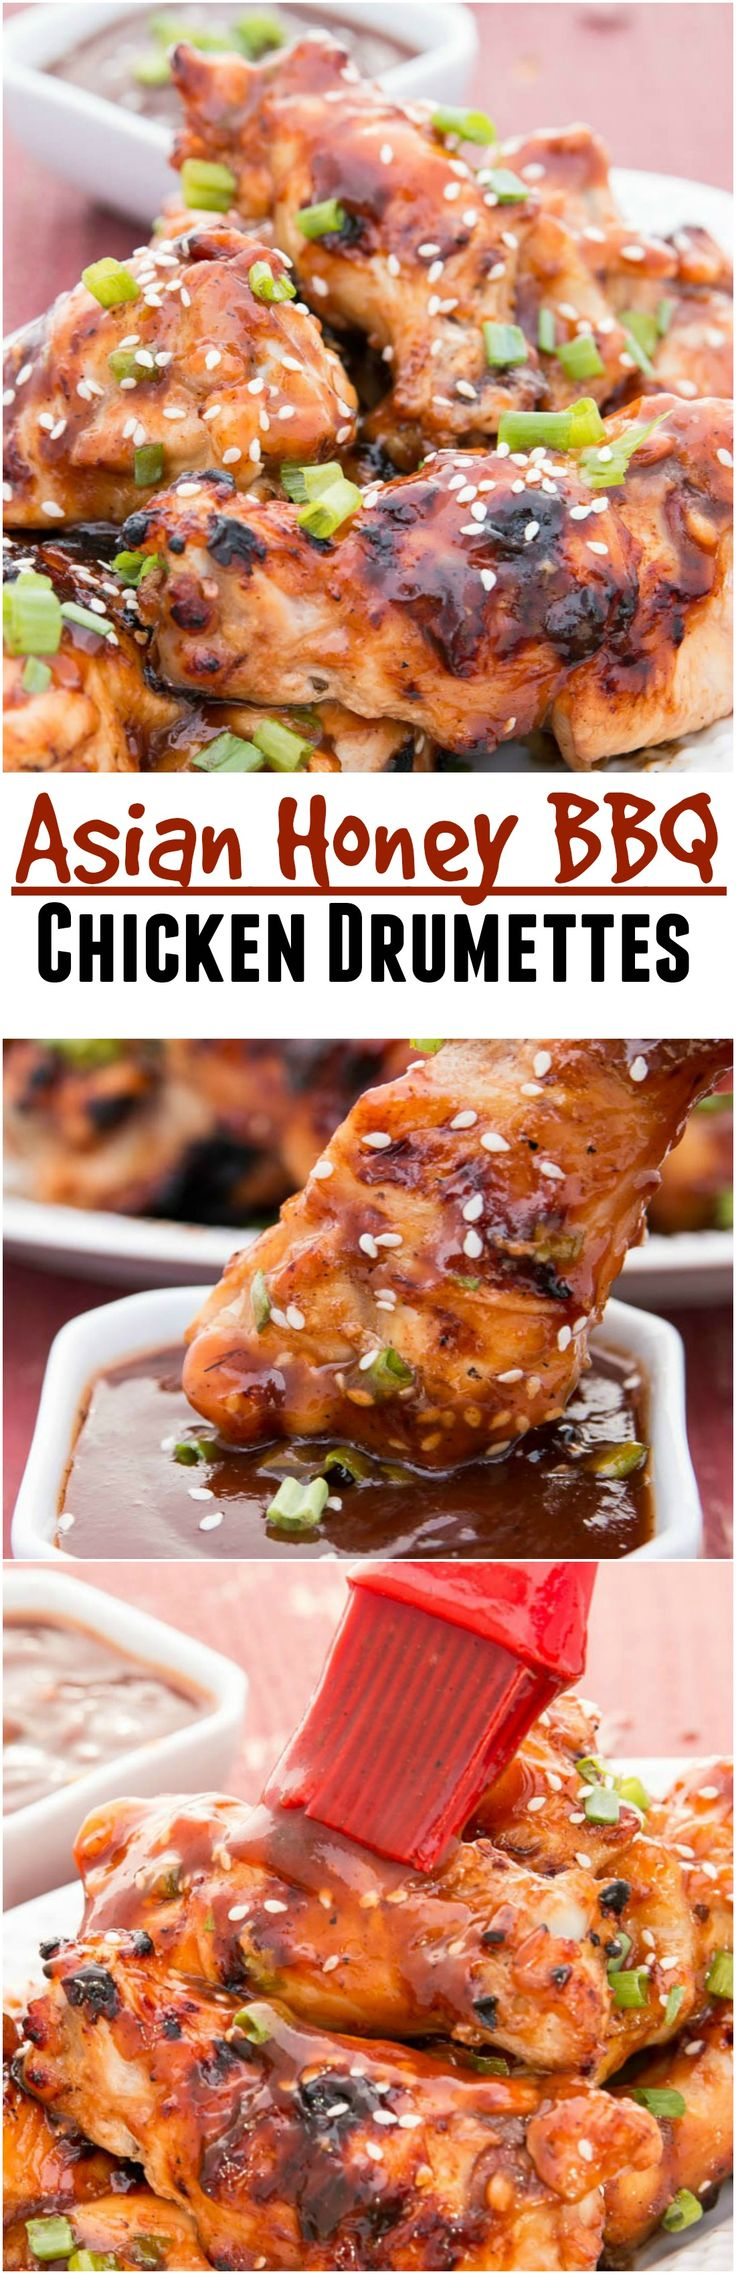 Asian Honey BBQ Chicken Drumettes are a quick and simple appetizers, side, or afternoon snack.